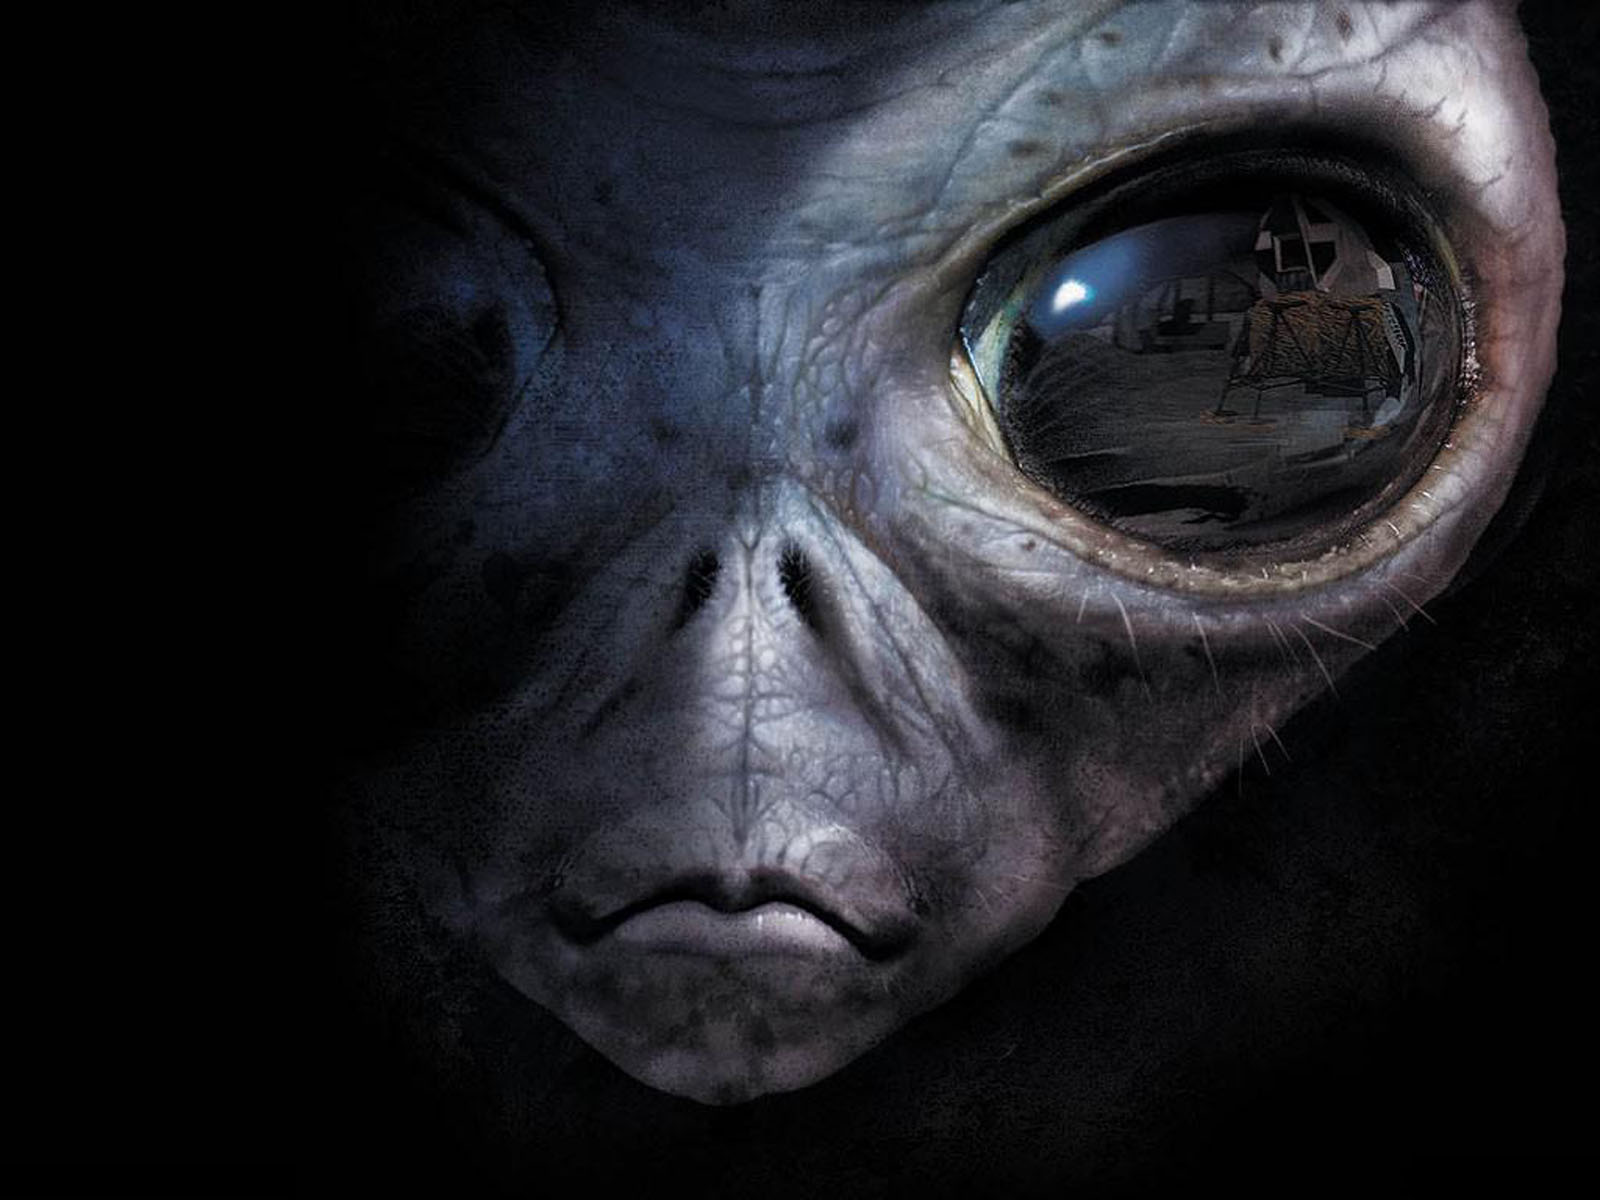 wallpapers Alien Eyes Wallpapers 1600x1200